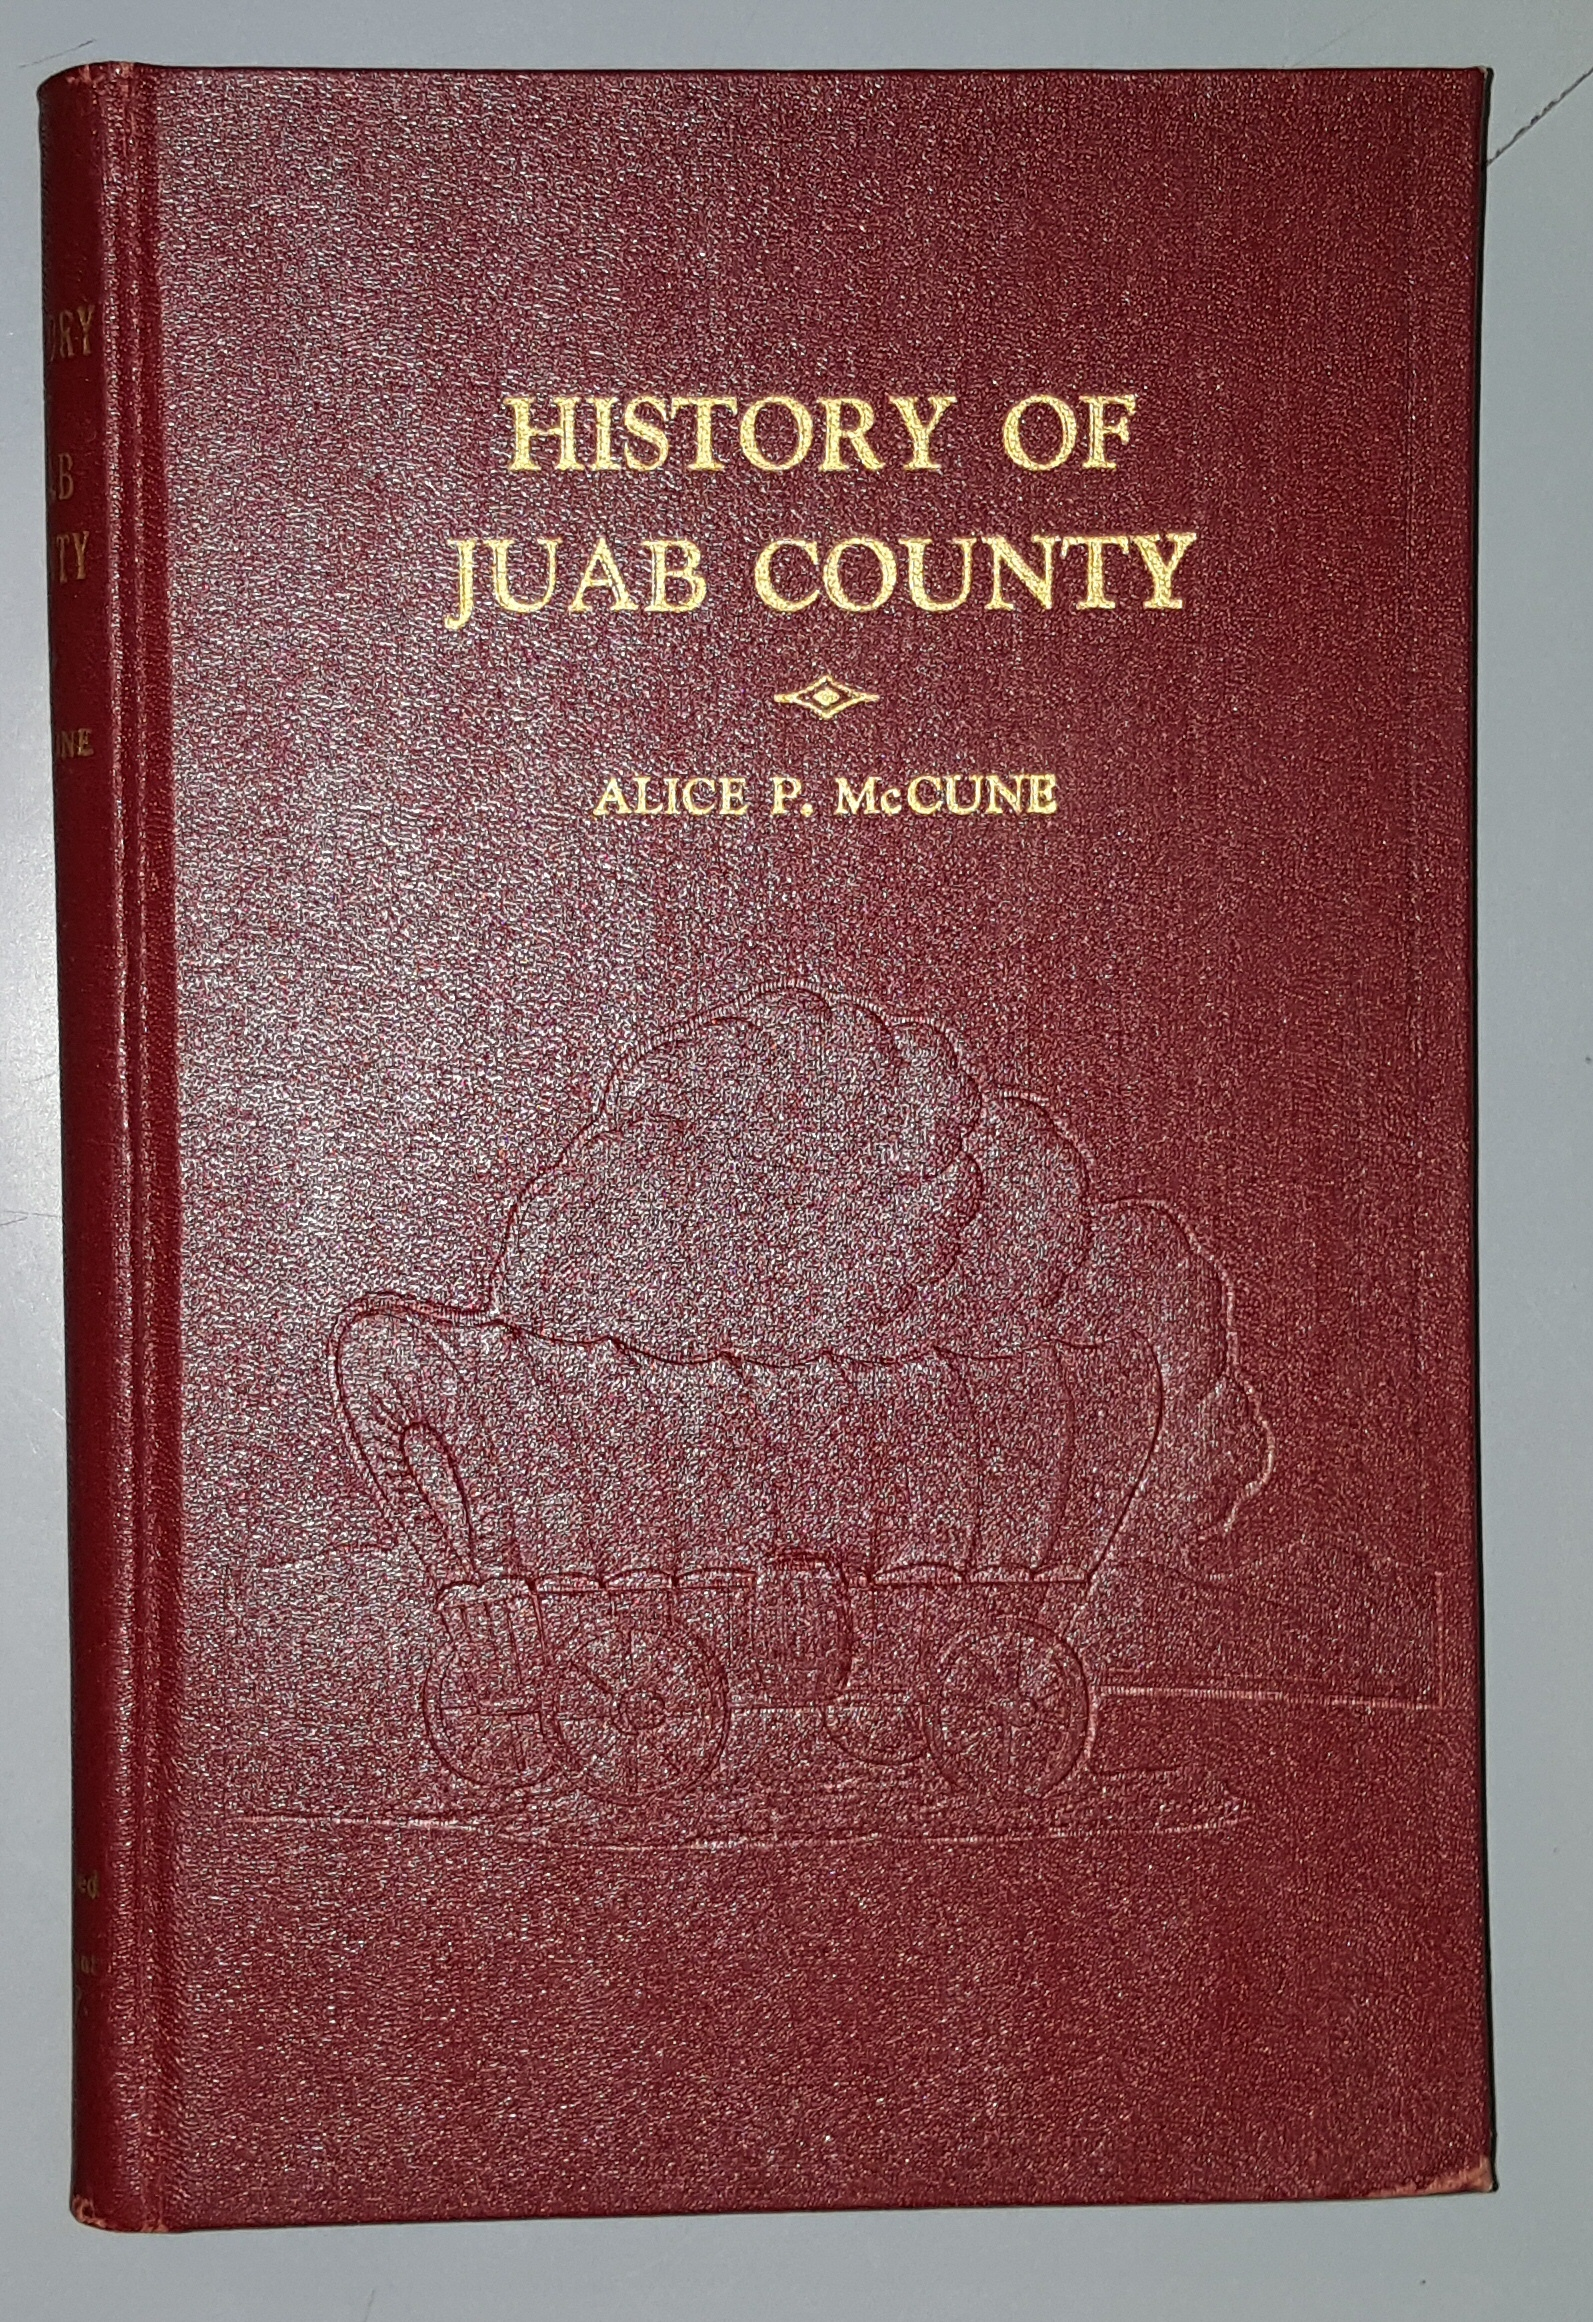 Image for History of Juab County - A History Prepared for the Centennial of the Coming of the Pioneers to Utah 1847-1947